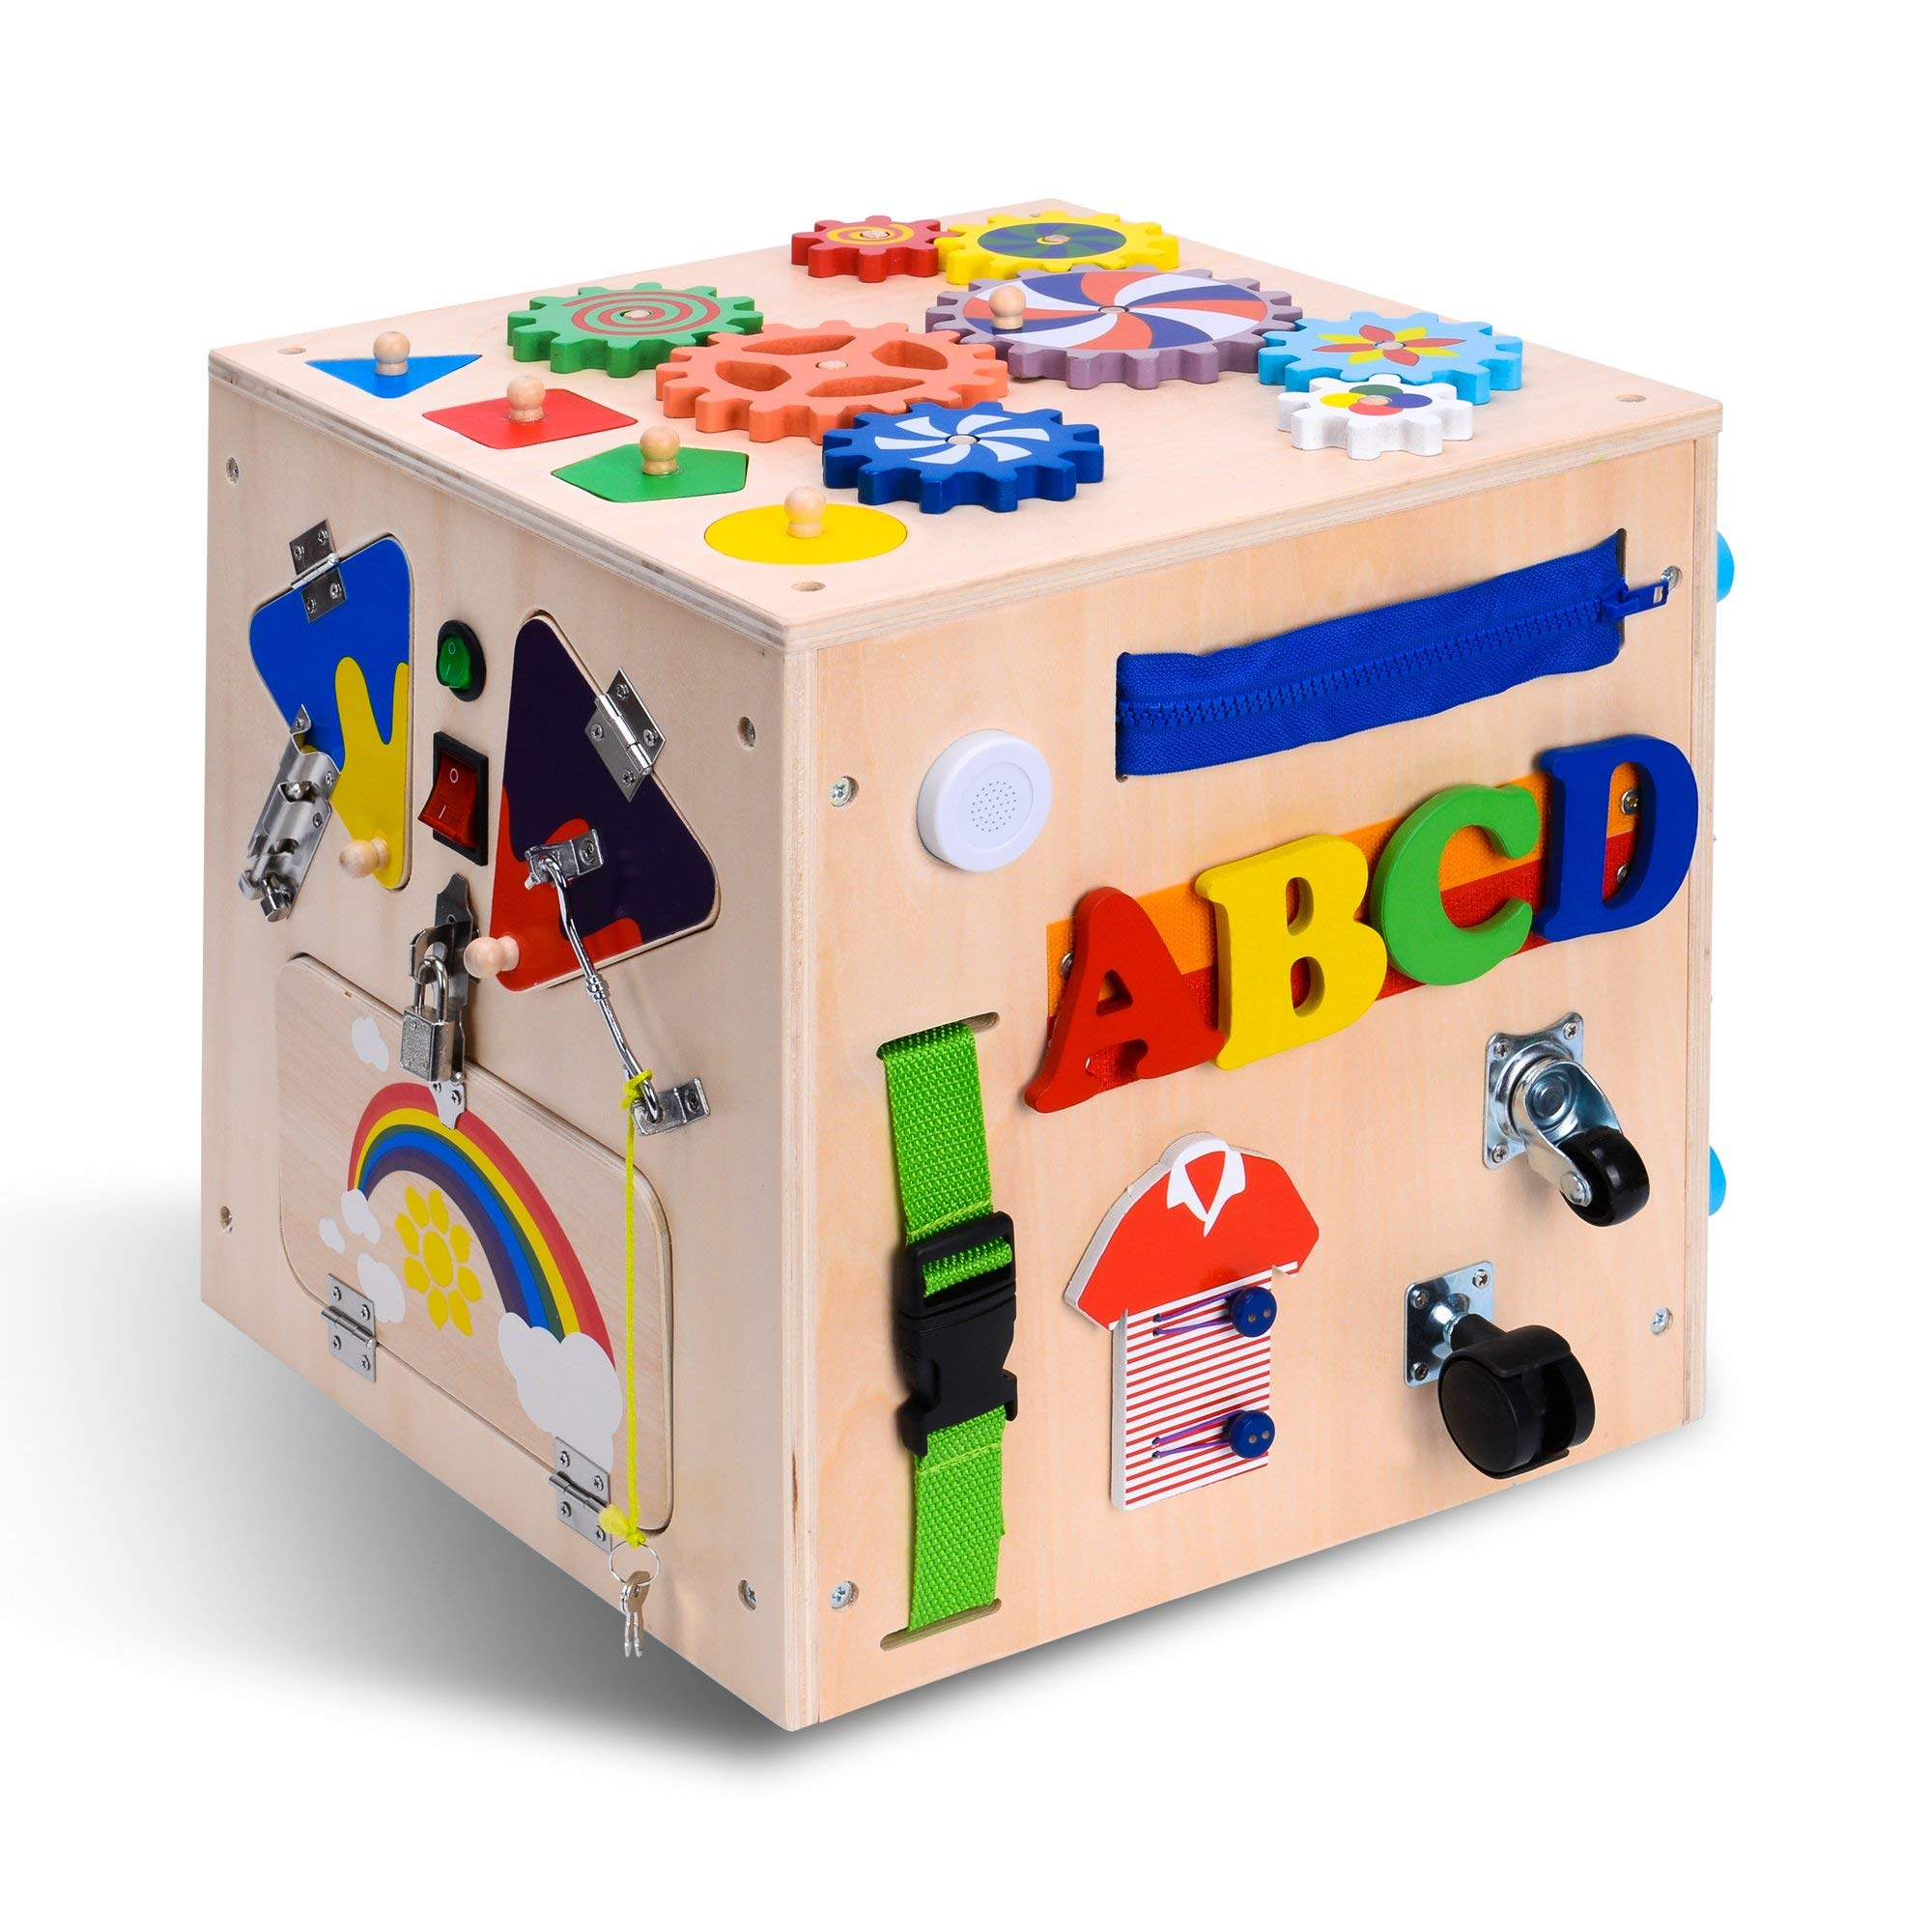 Primo Supply 5X Sensory Board Montessori Busy Box Enrichment Educational Learning Toy l Fun Engaging Cube for Toddlers Play with Zippers Buttons Wheels Bells Lock Flaps Rotor Gears, Buckles by Primo Supply